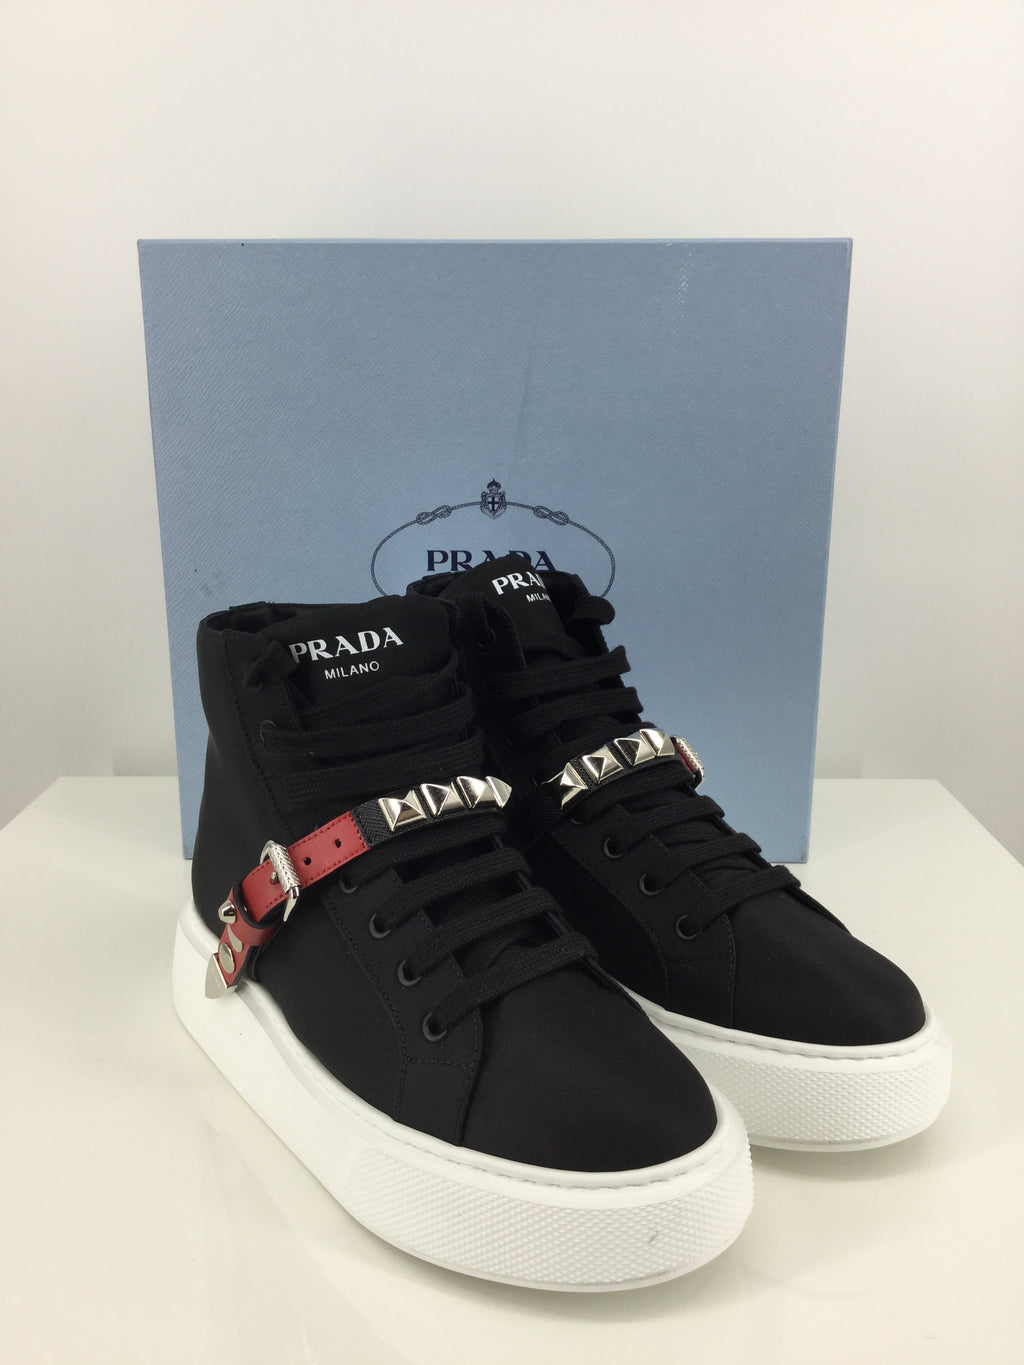 Prada Shoes Athletic